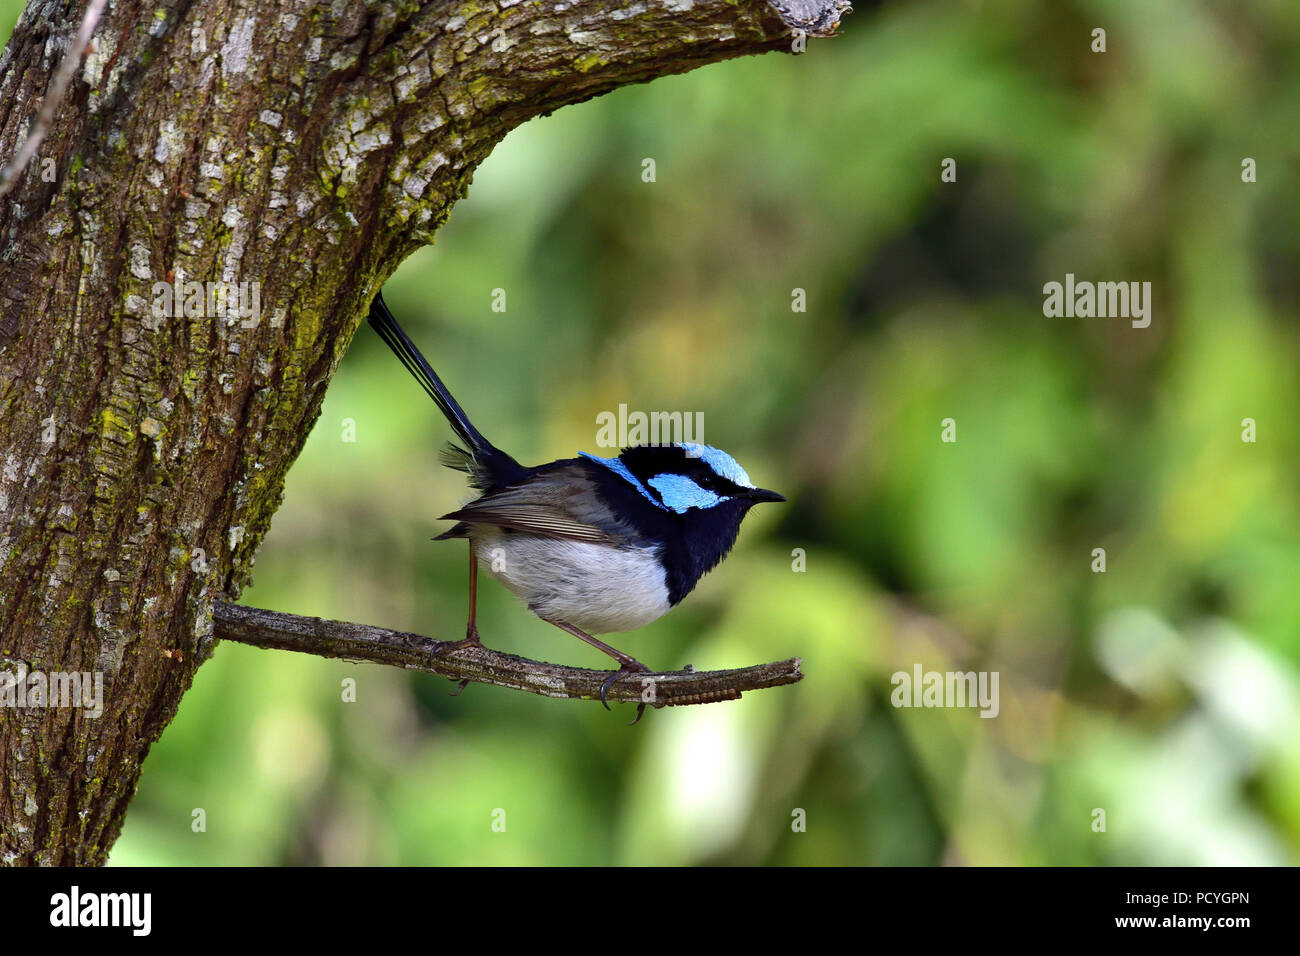 An Australian, Queensland Male Superb Fairy-wren ( Malurus cyaneus ) perched on a tree branch looking up for food - Stock Image